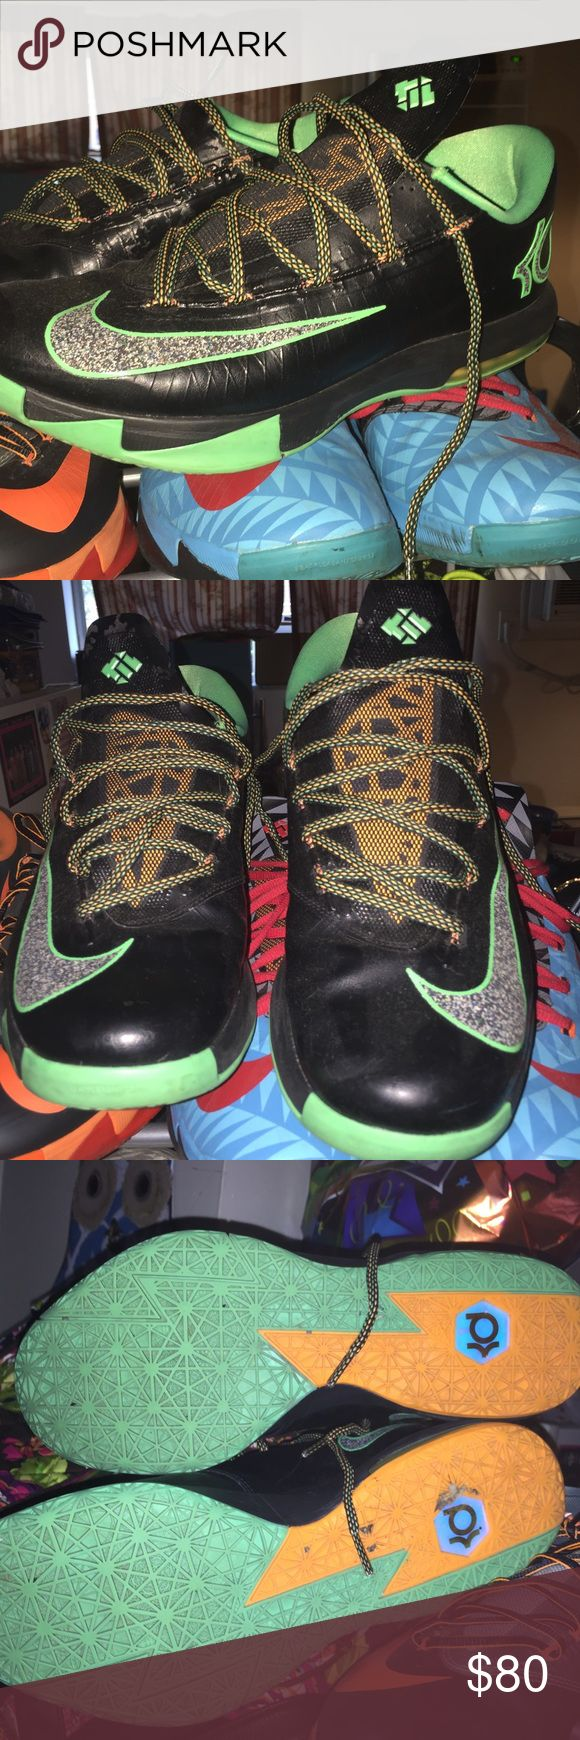 Men's Nike kd 6 shoes In awesome shape these shoes maybe have been worn twice Nike Shoes